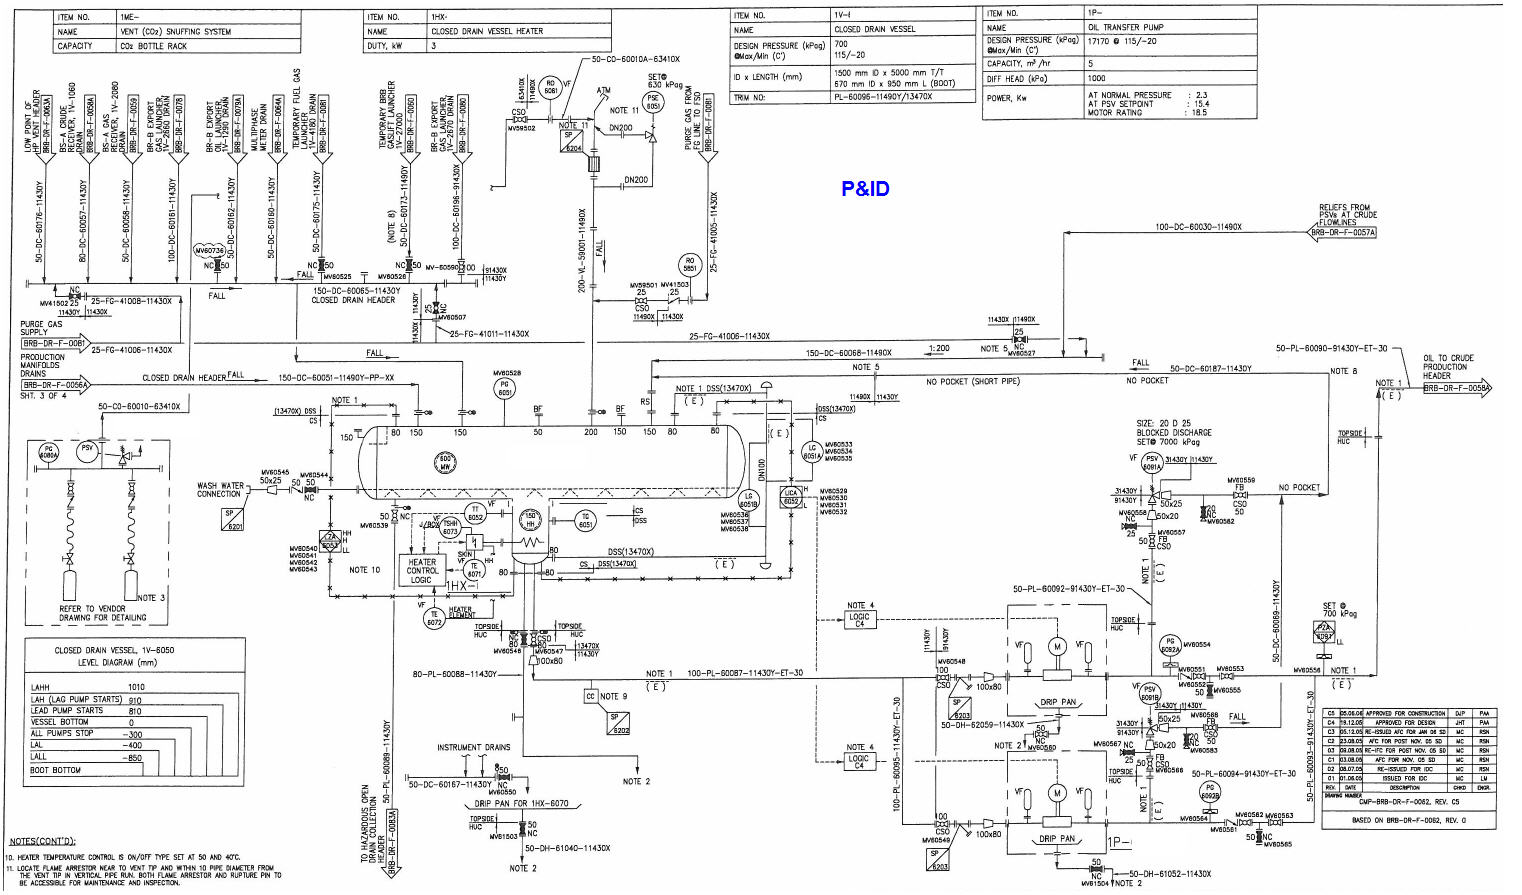 Typical Boiler Piping Diagram Trusted Schematics Of Steam Design Www Topsimages Com Indirect Water Heater Process And Instrument